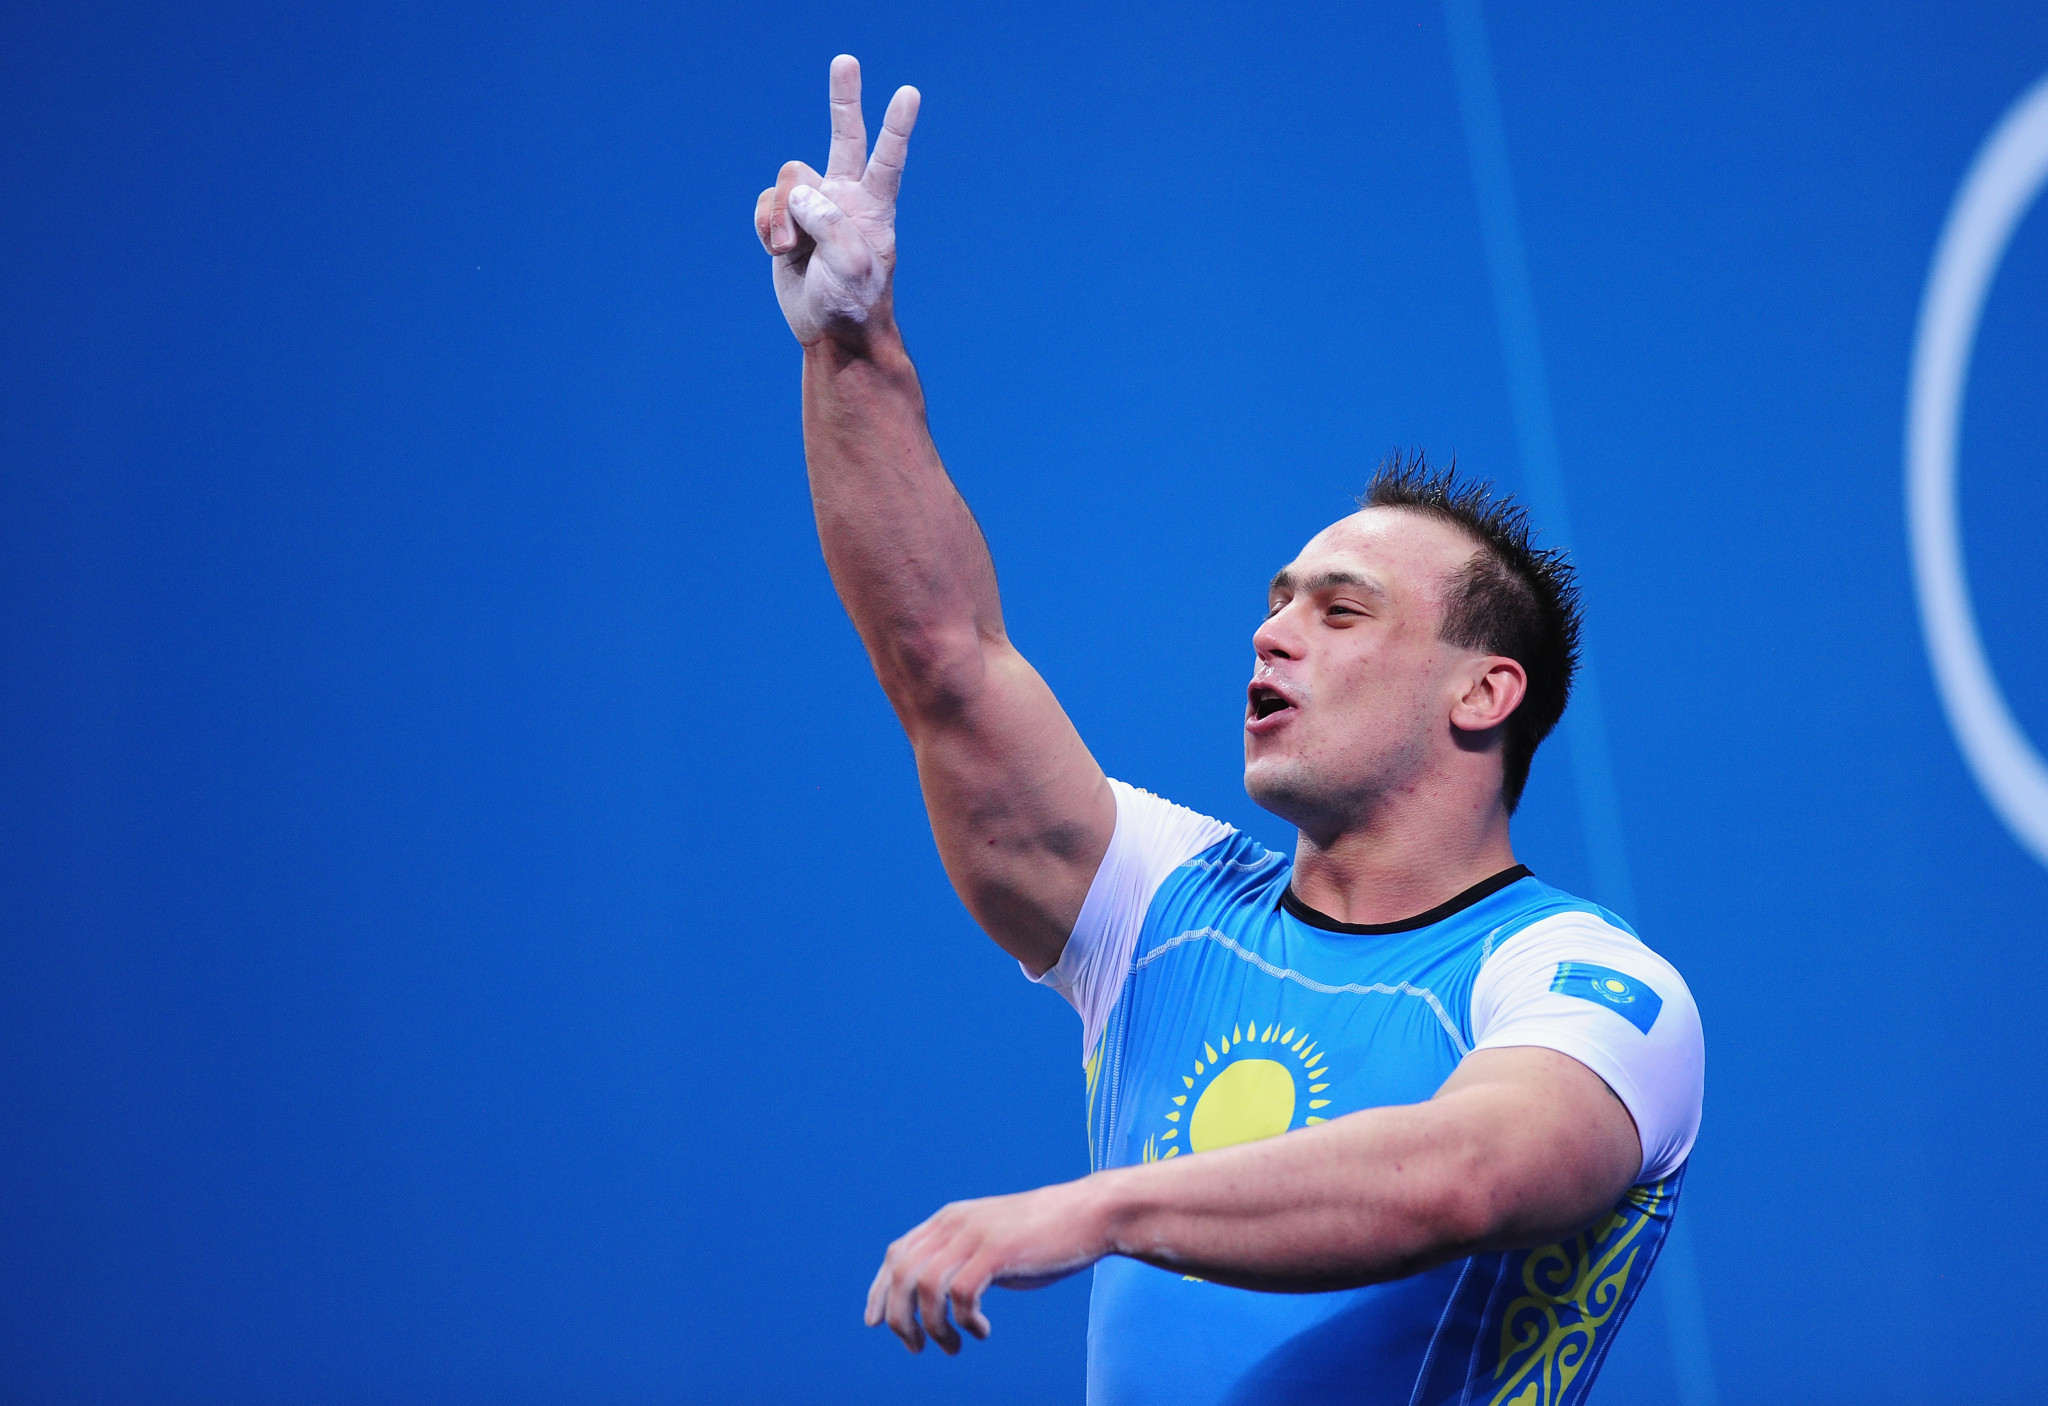 Ilya Ilyin celebrates winning a second Olympic title - but both gold medals have now been taken from him. However, he is still in line to compete at Tokyo 2020 ©Getty Images